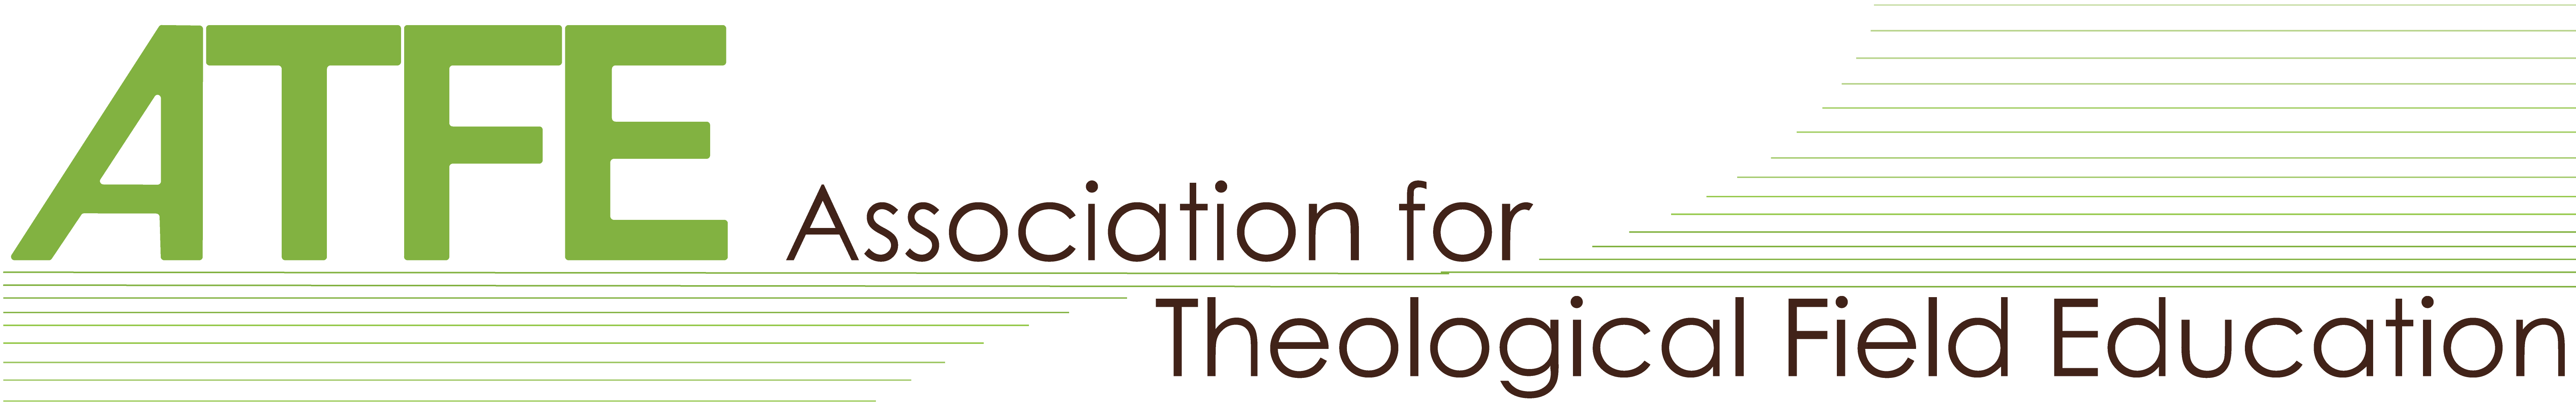 Association for Theological Field Education